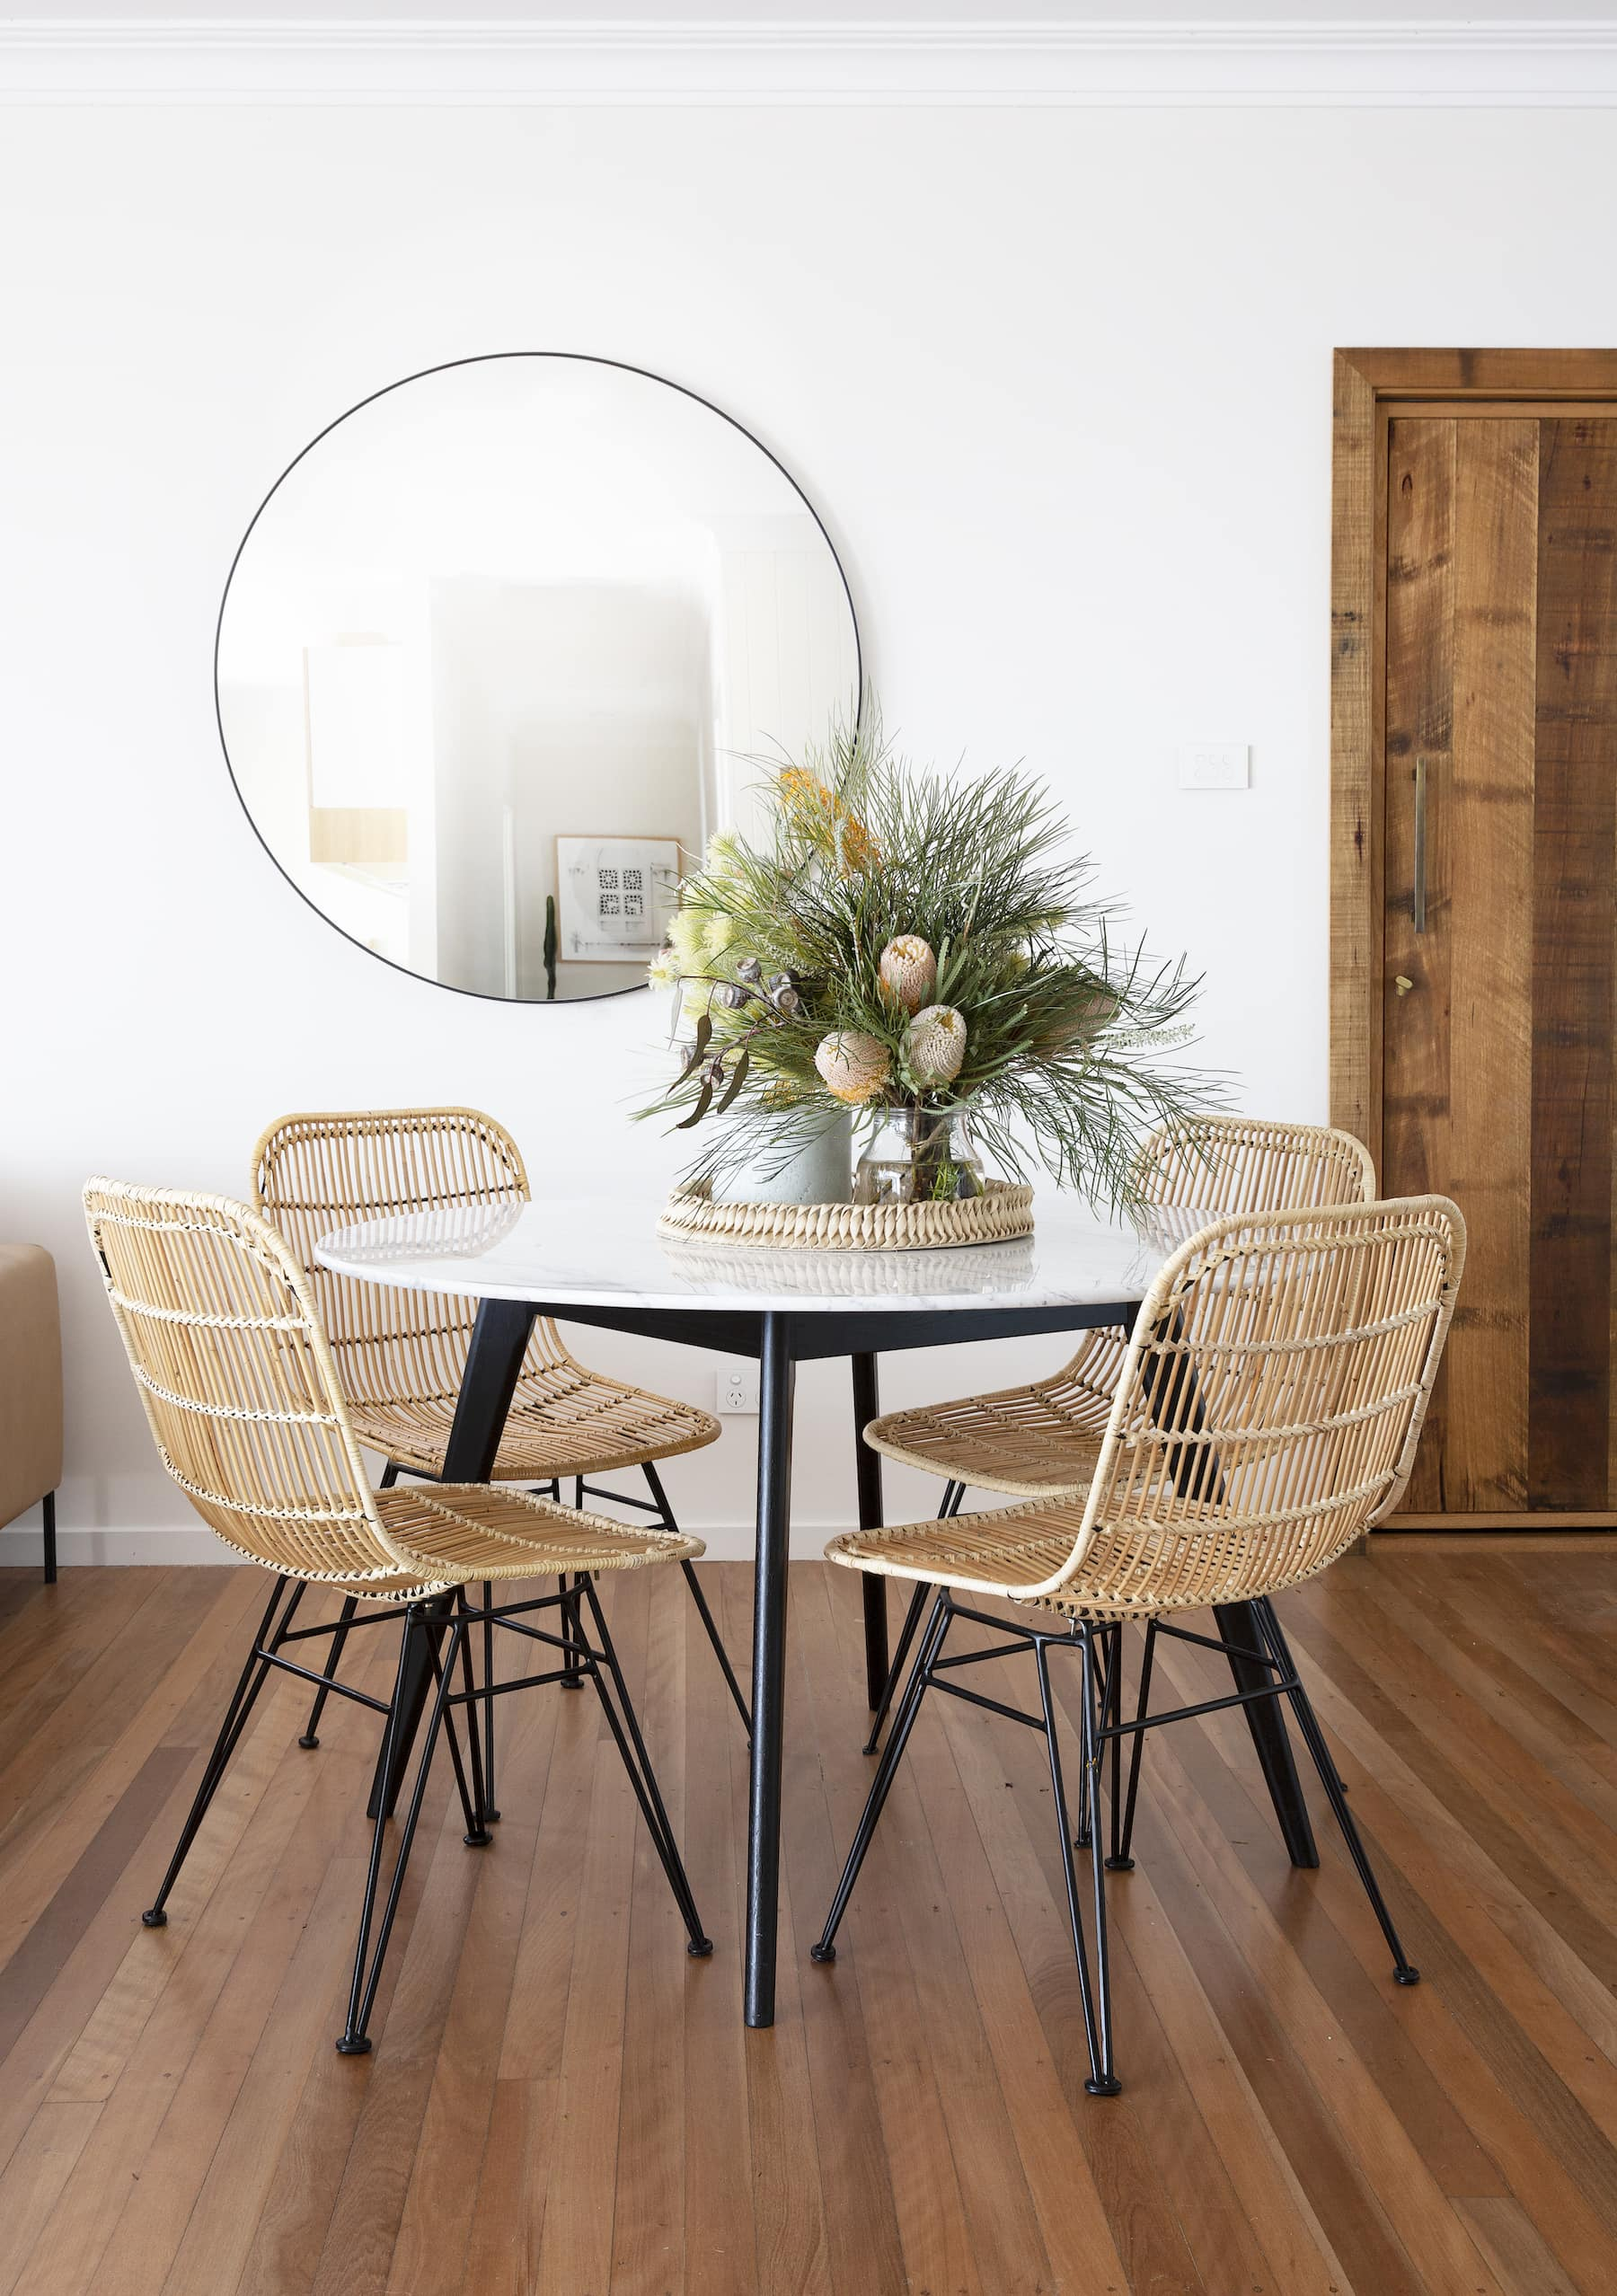 How To Match A Dining Table With The Right Chairs Tlc Interiors